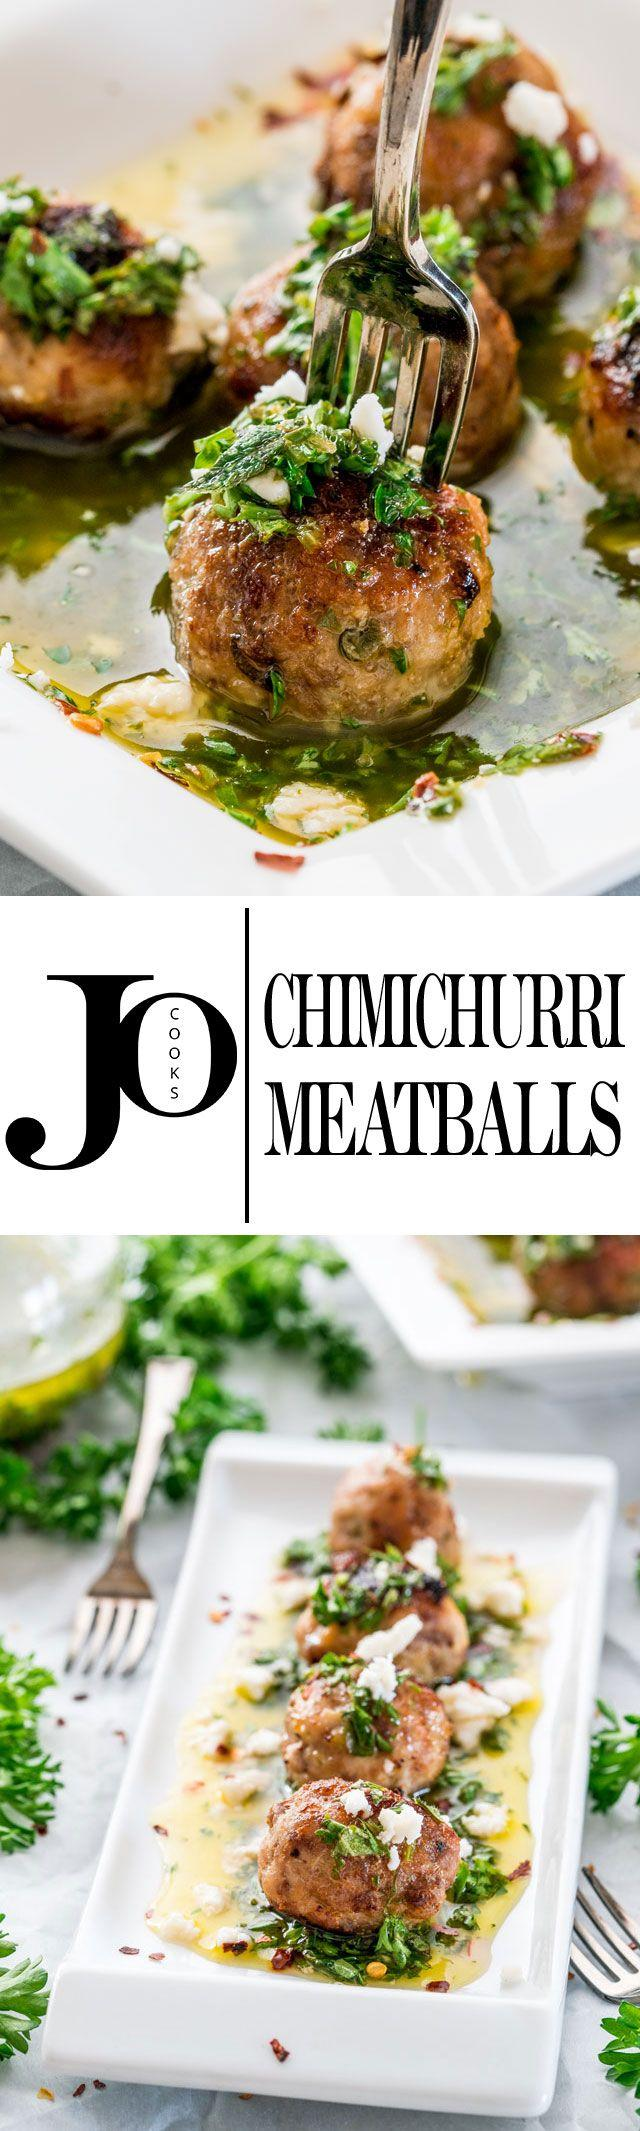 Wedding - Chimichurri Meatballs